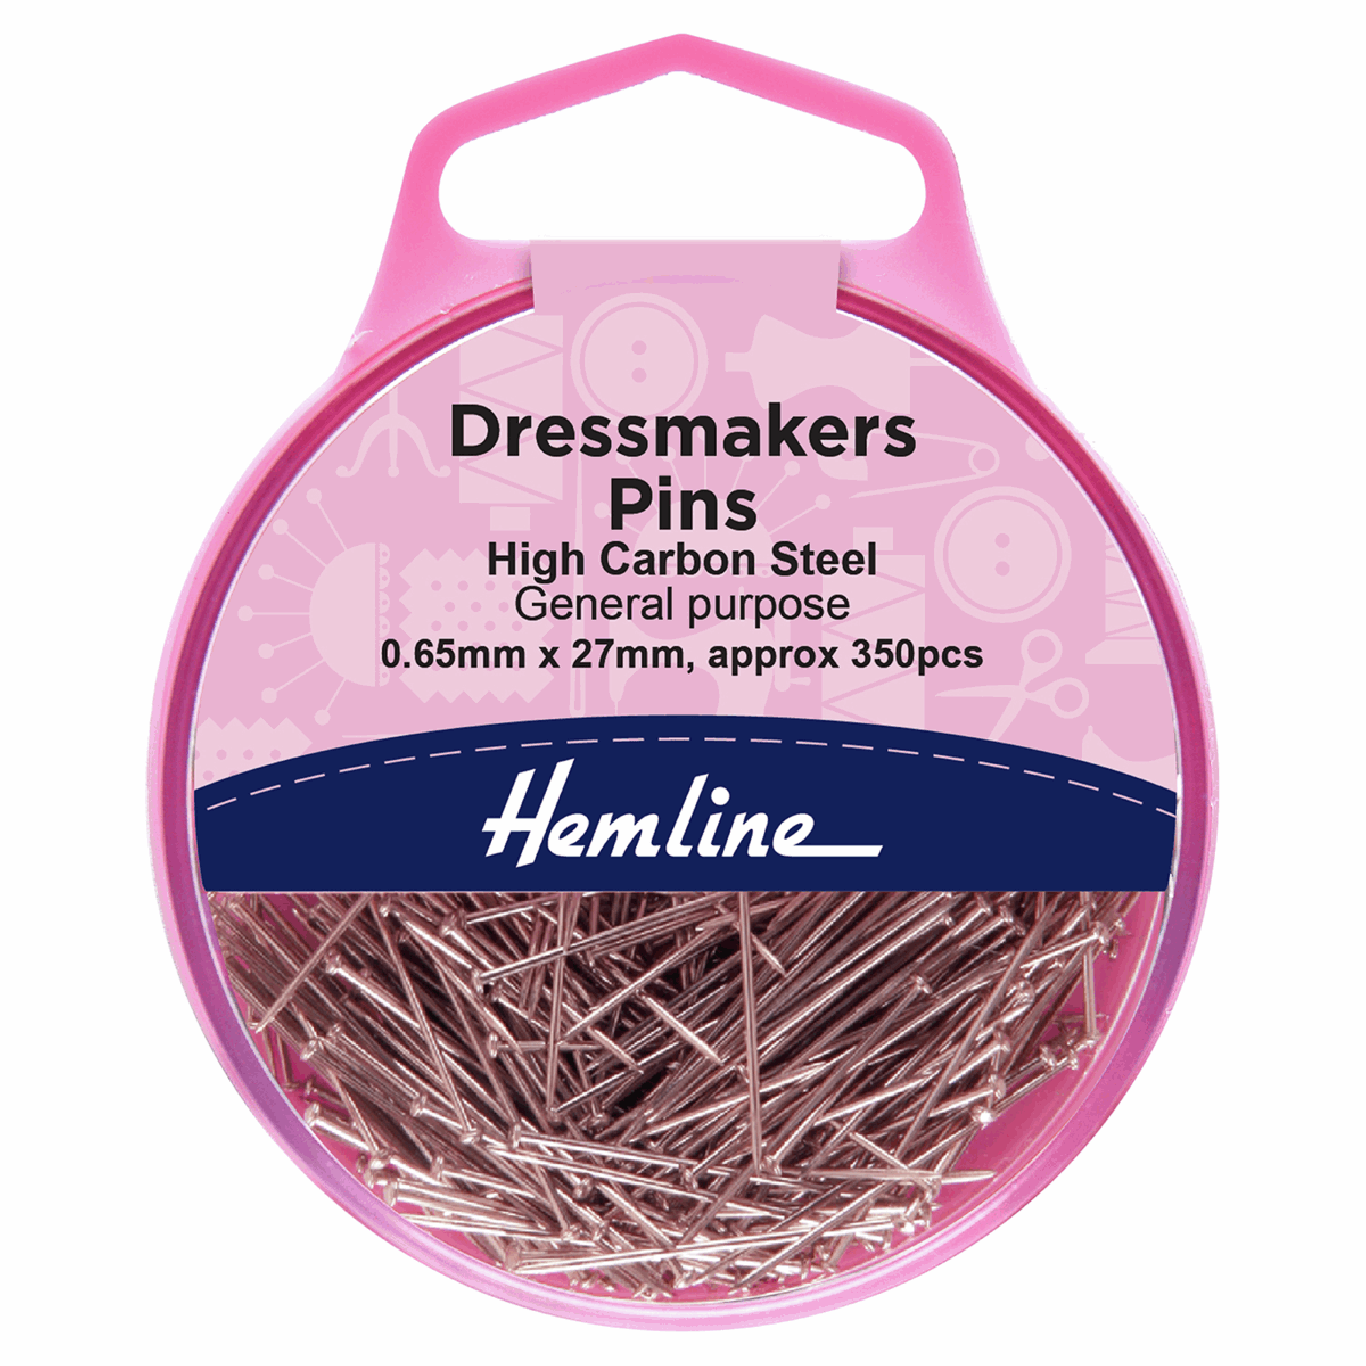 Image of Dressmaker's Pins | 26mm | 310 Pieces